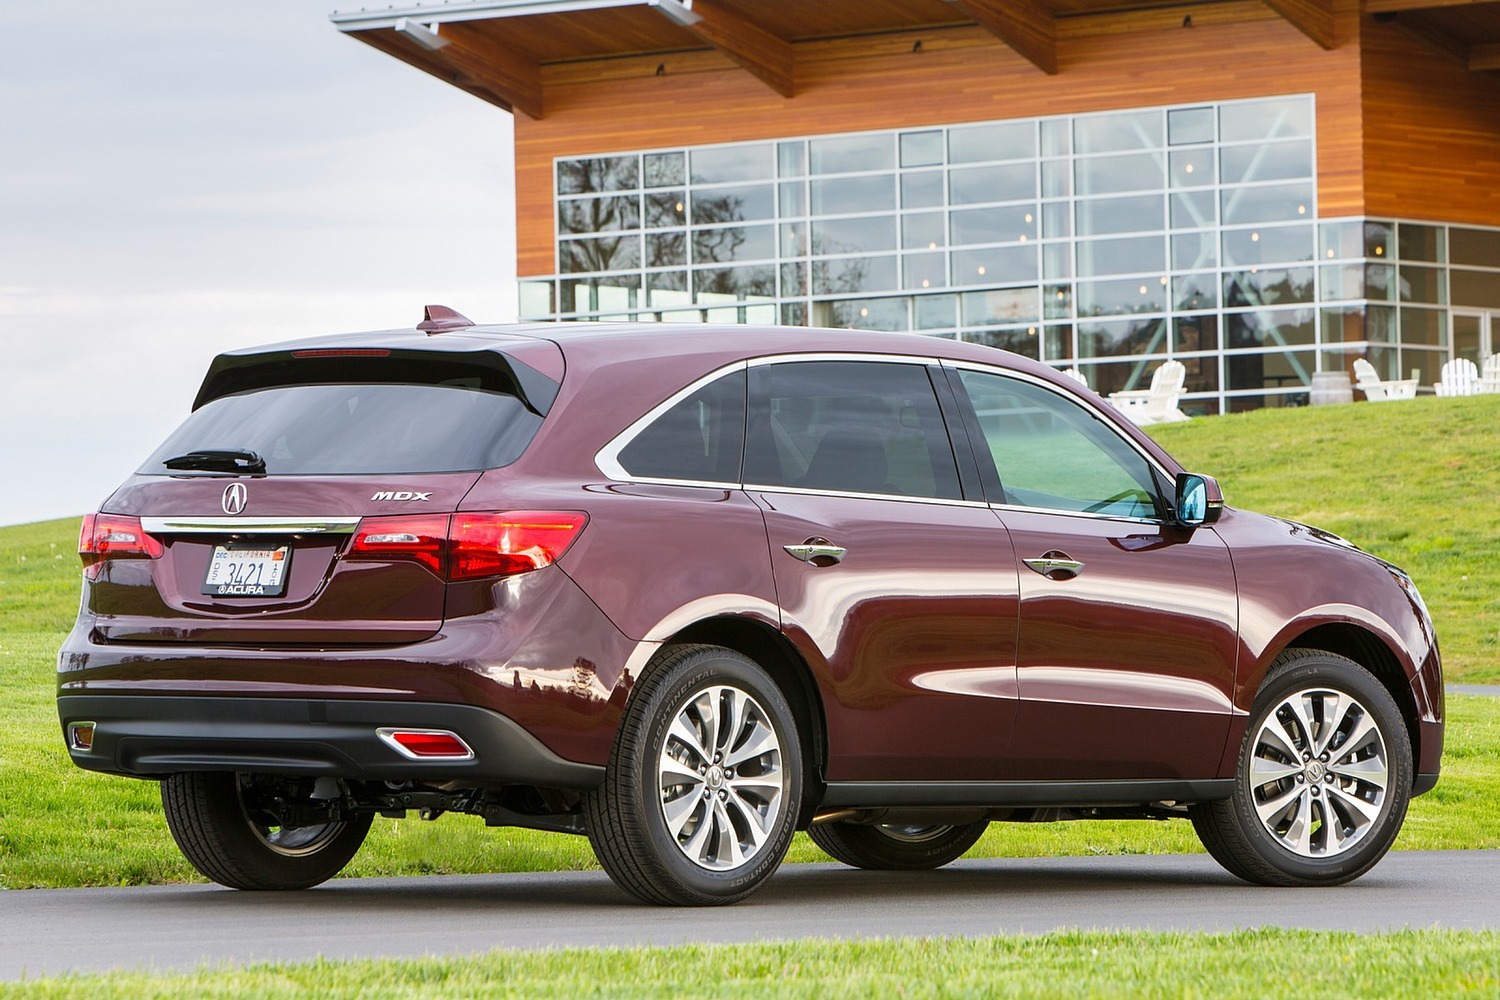 2016 Acura MDX Technology, Entertainment and AcuraWatch Plus Packages 4dr SUV Exterior